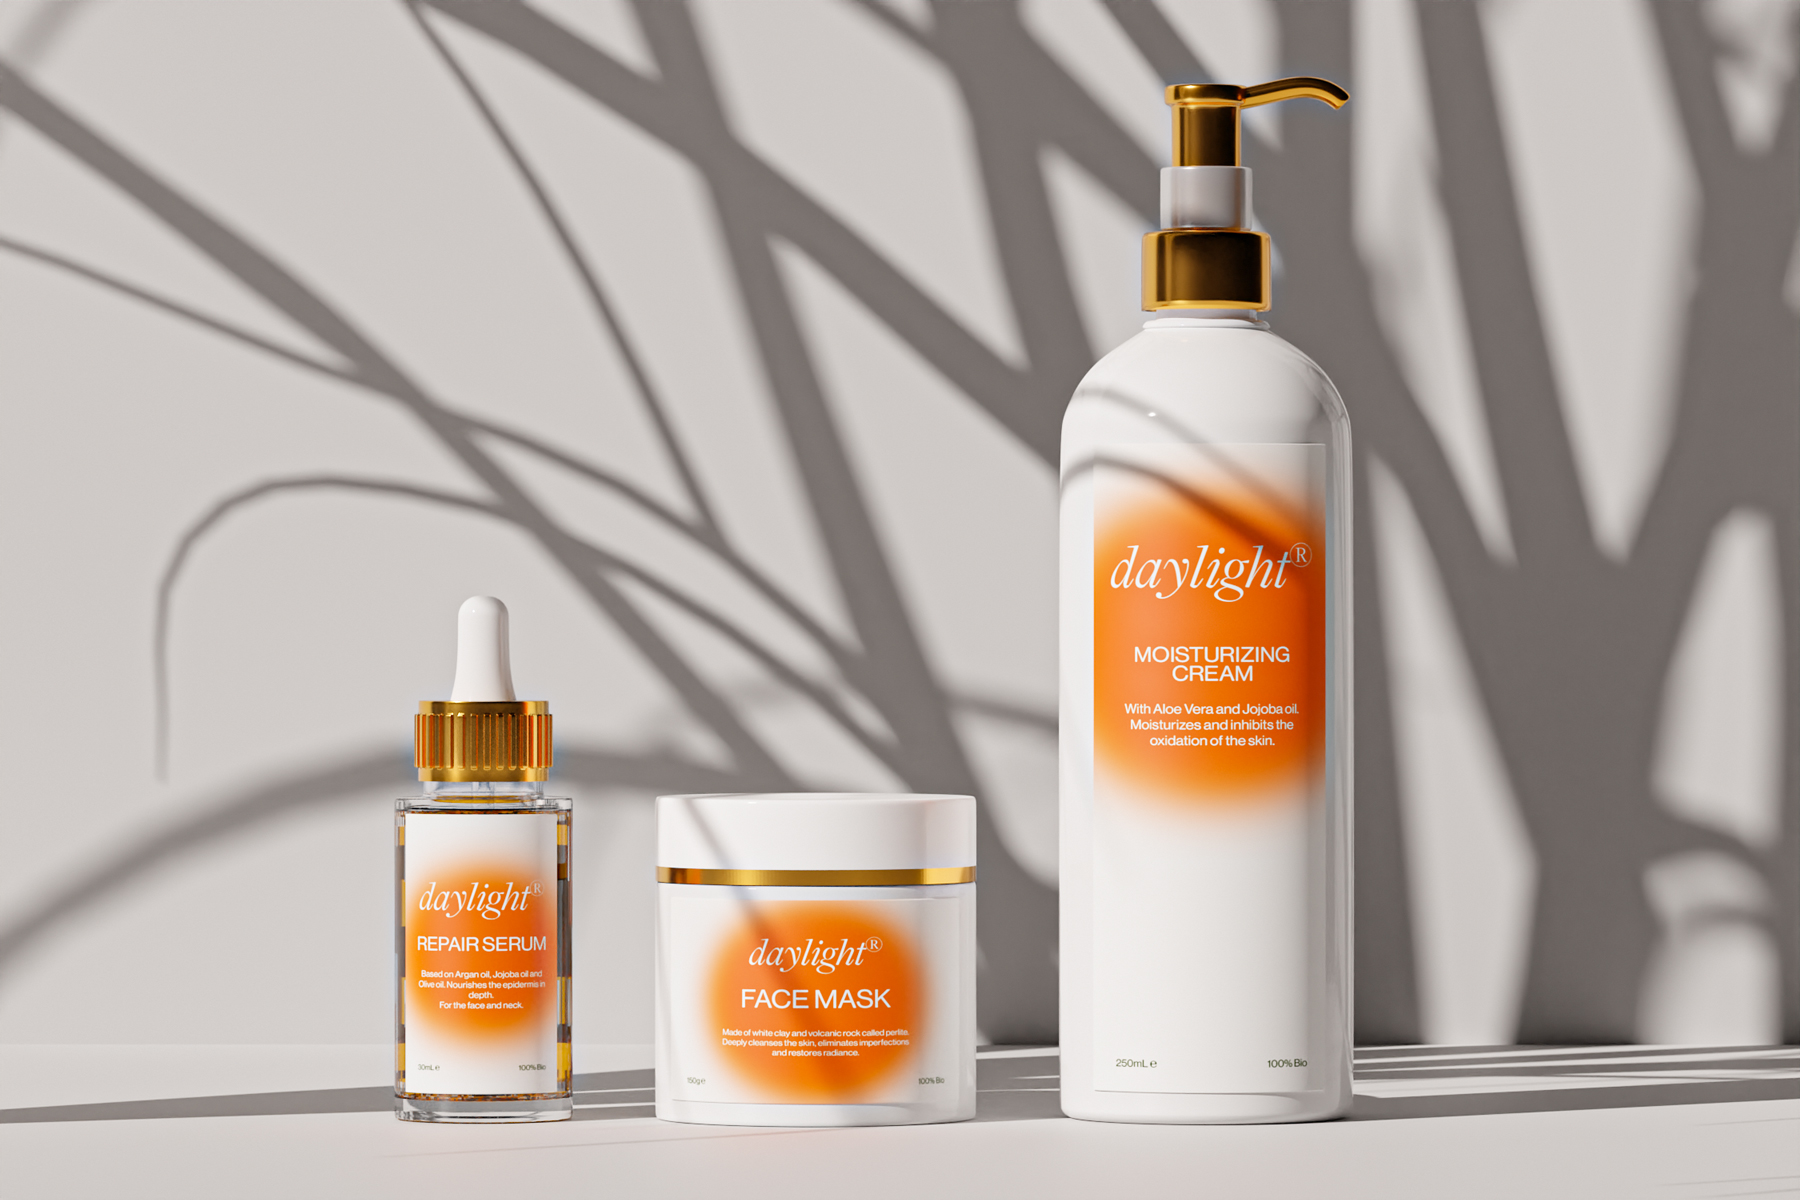 Daylight Natural Skincare Branding and Packaging Design